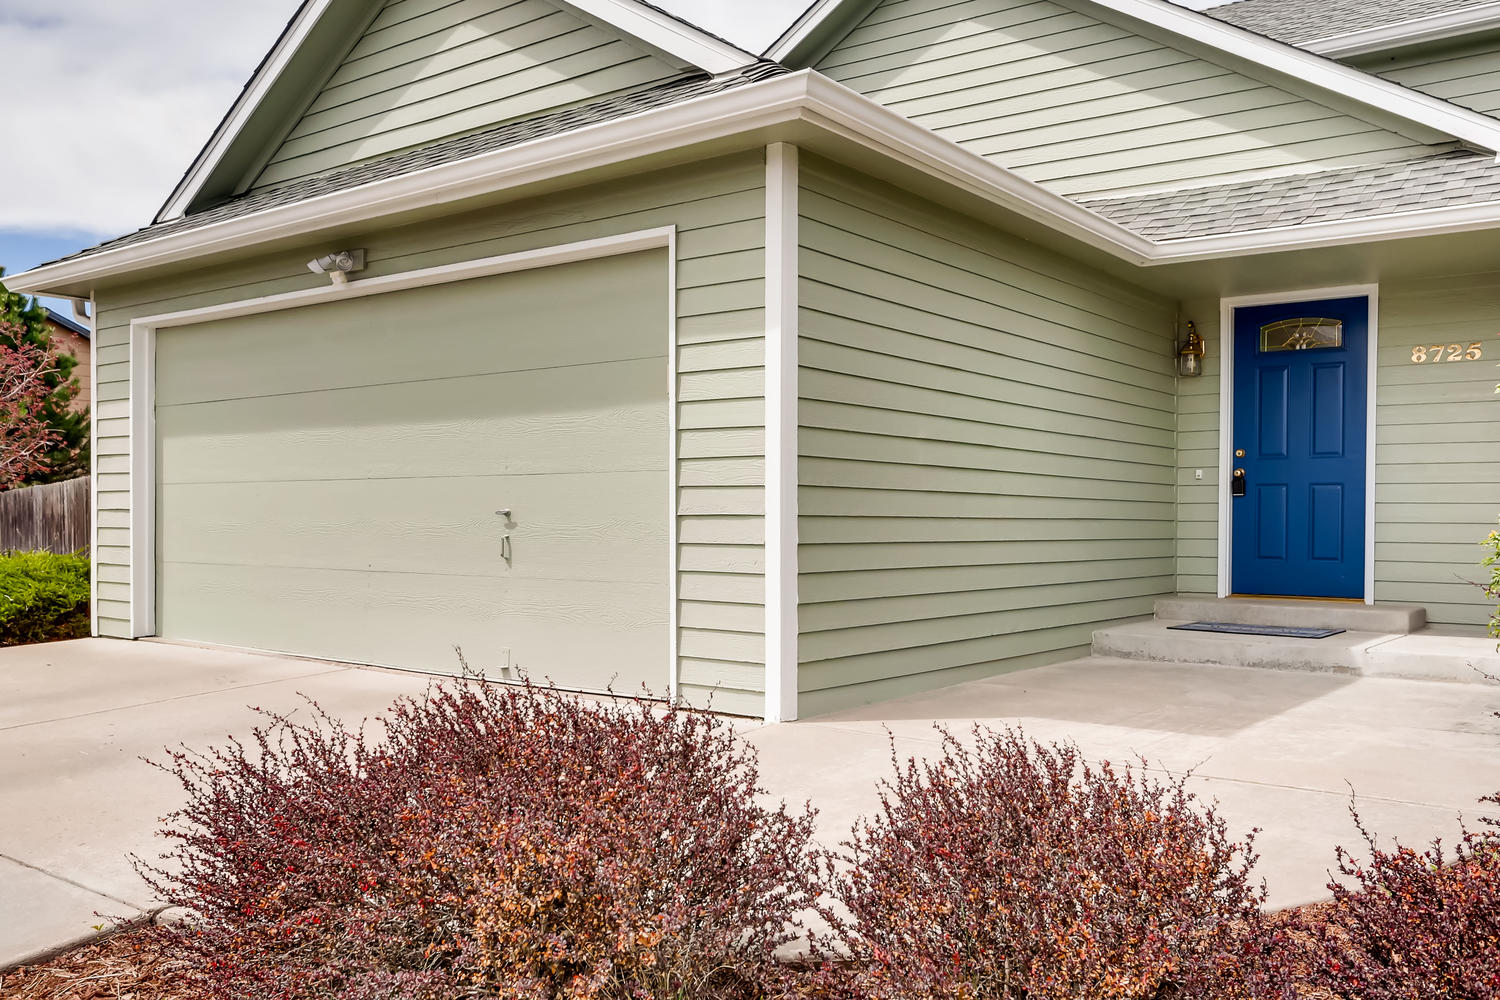 REAL ESTATE LISTING: 8725 S Yukon St Littleton CO Front Entry